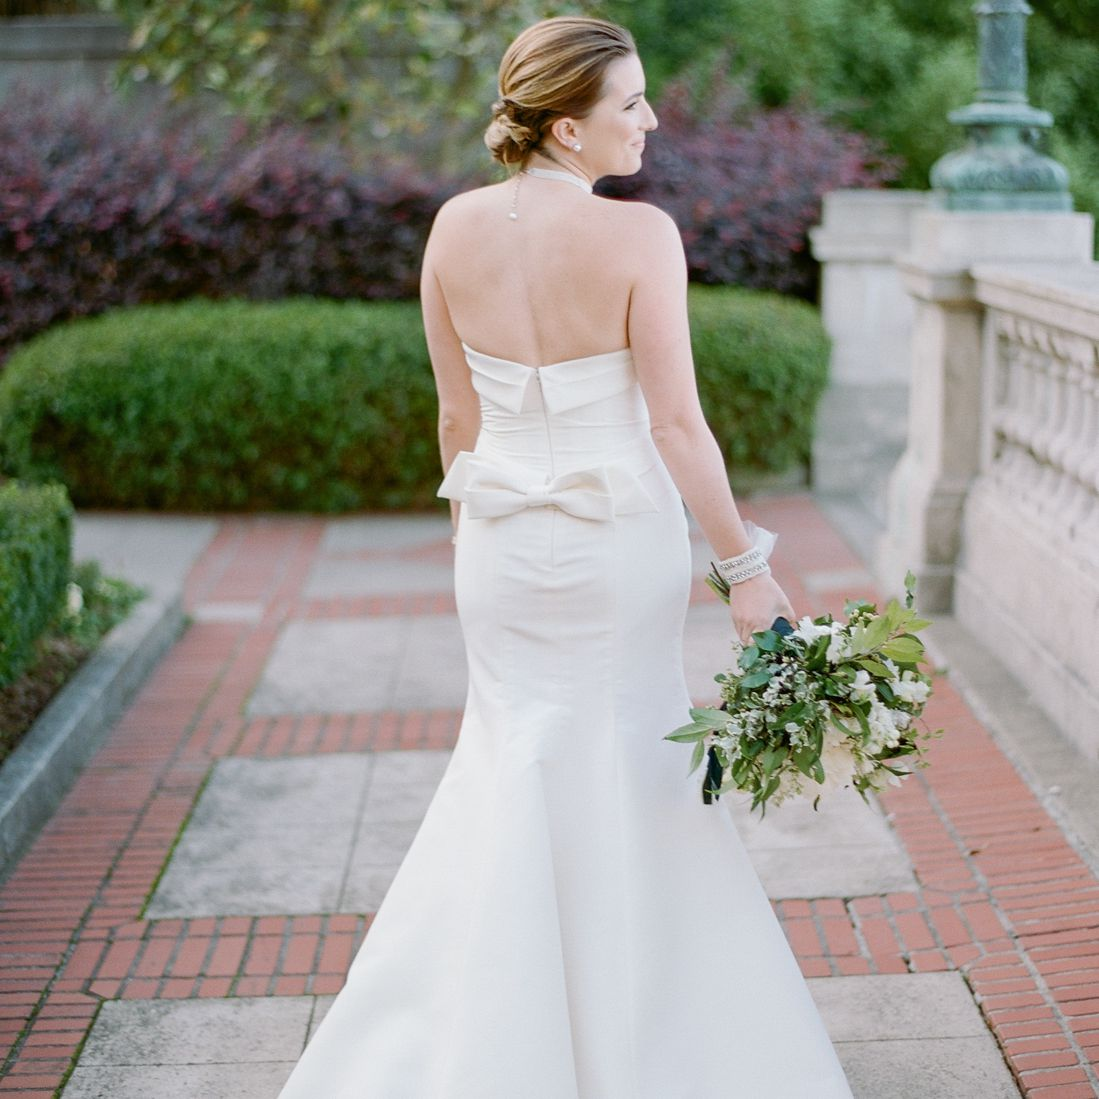 bow detail on back of wedding dress